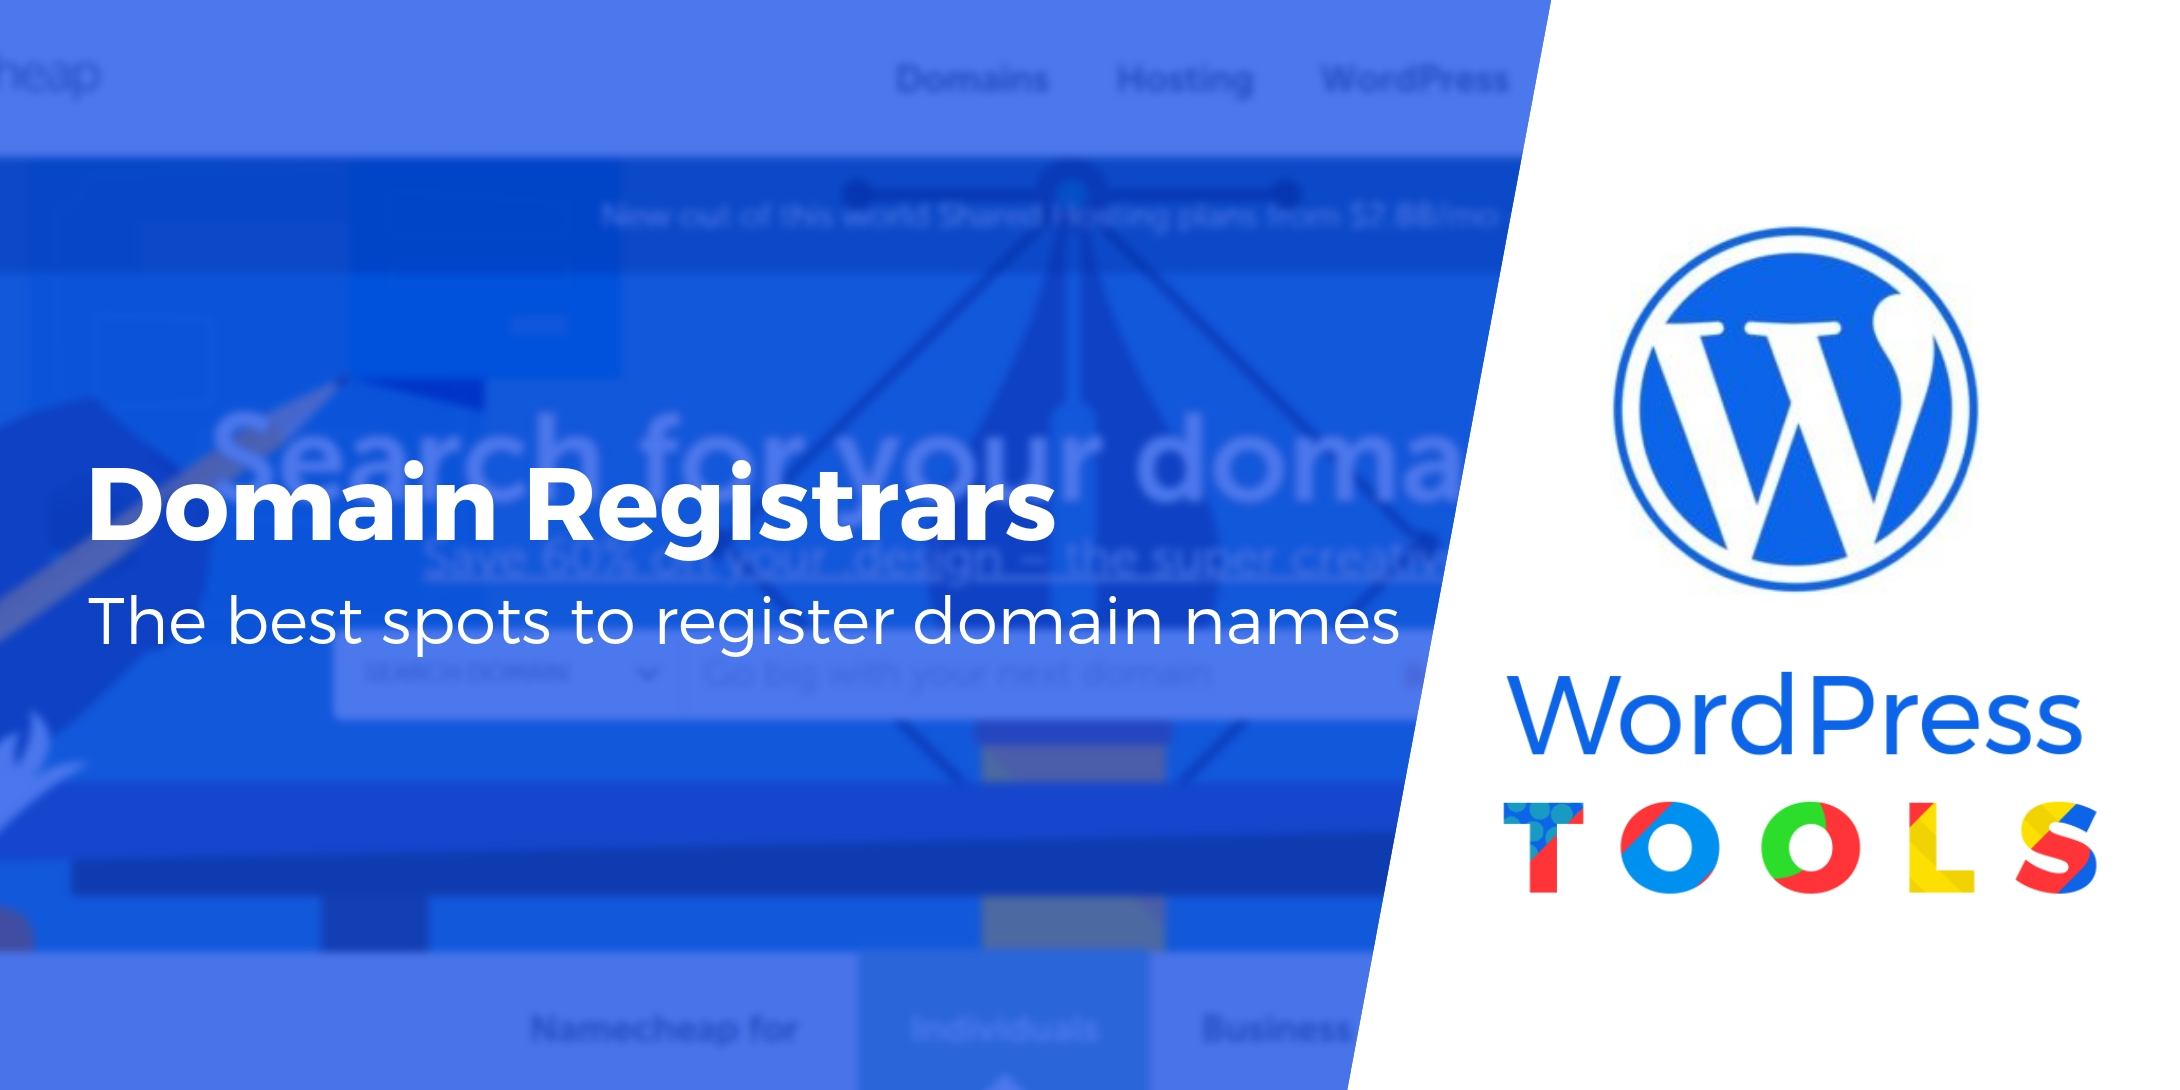 5 Best Domain Registrars: Who's the Cheapest and Should You Use Them?